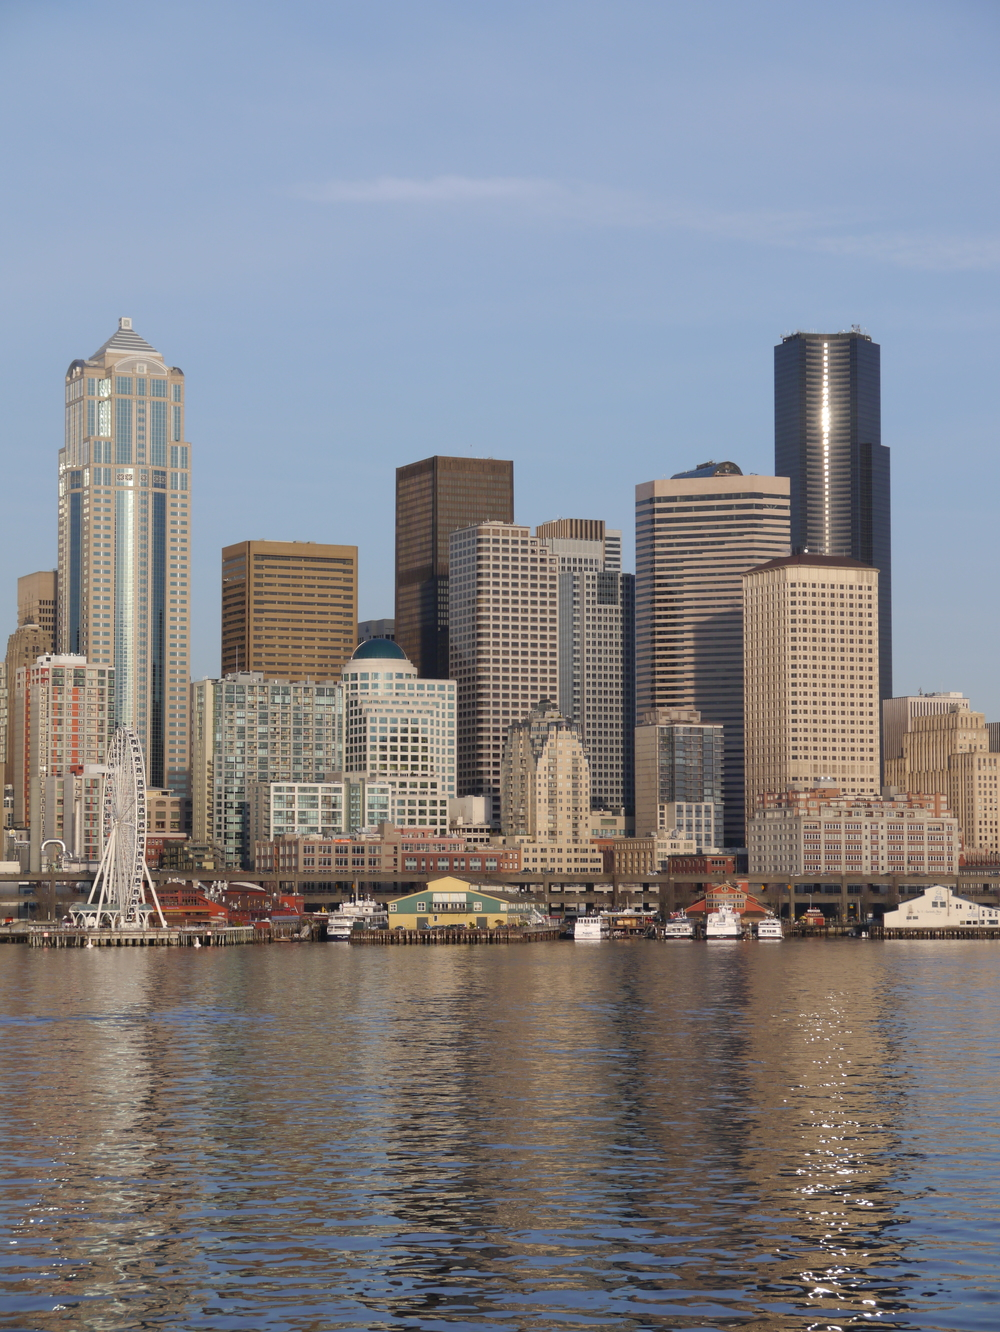 Seattle doesn't have a very tall skyline, but it is pretty.